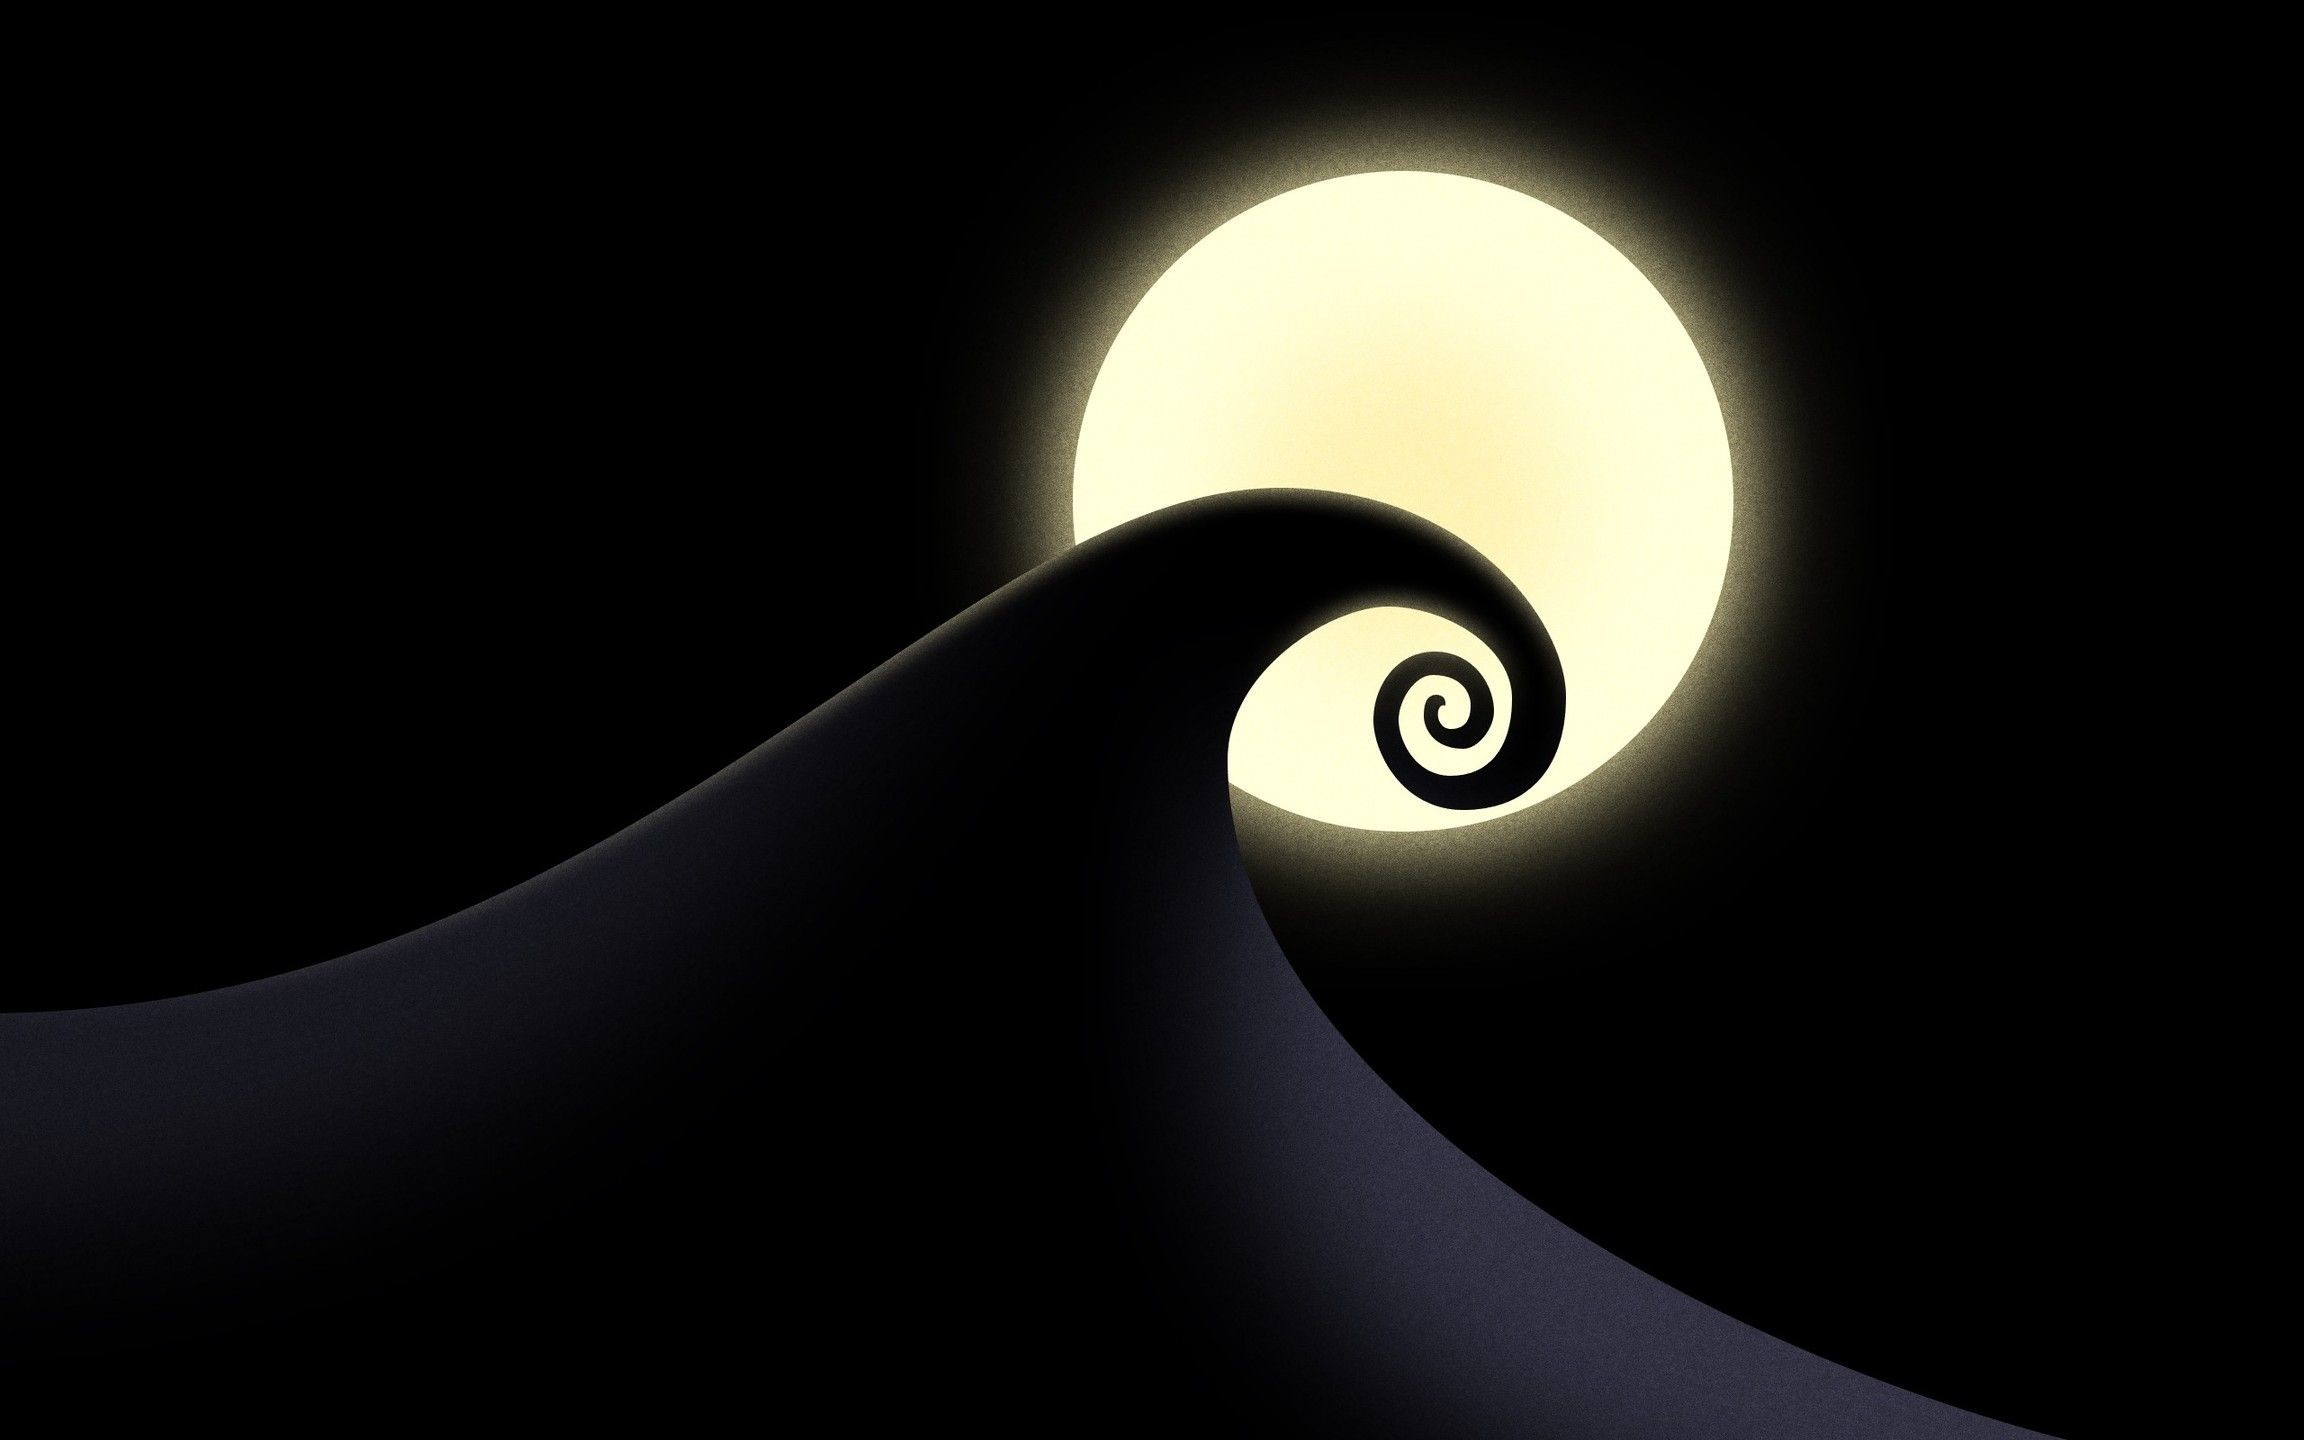 Nightmare Before Christmas Hd Wallpaper.The Nightmare Before Christmas Wallpaper 56 Pictures